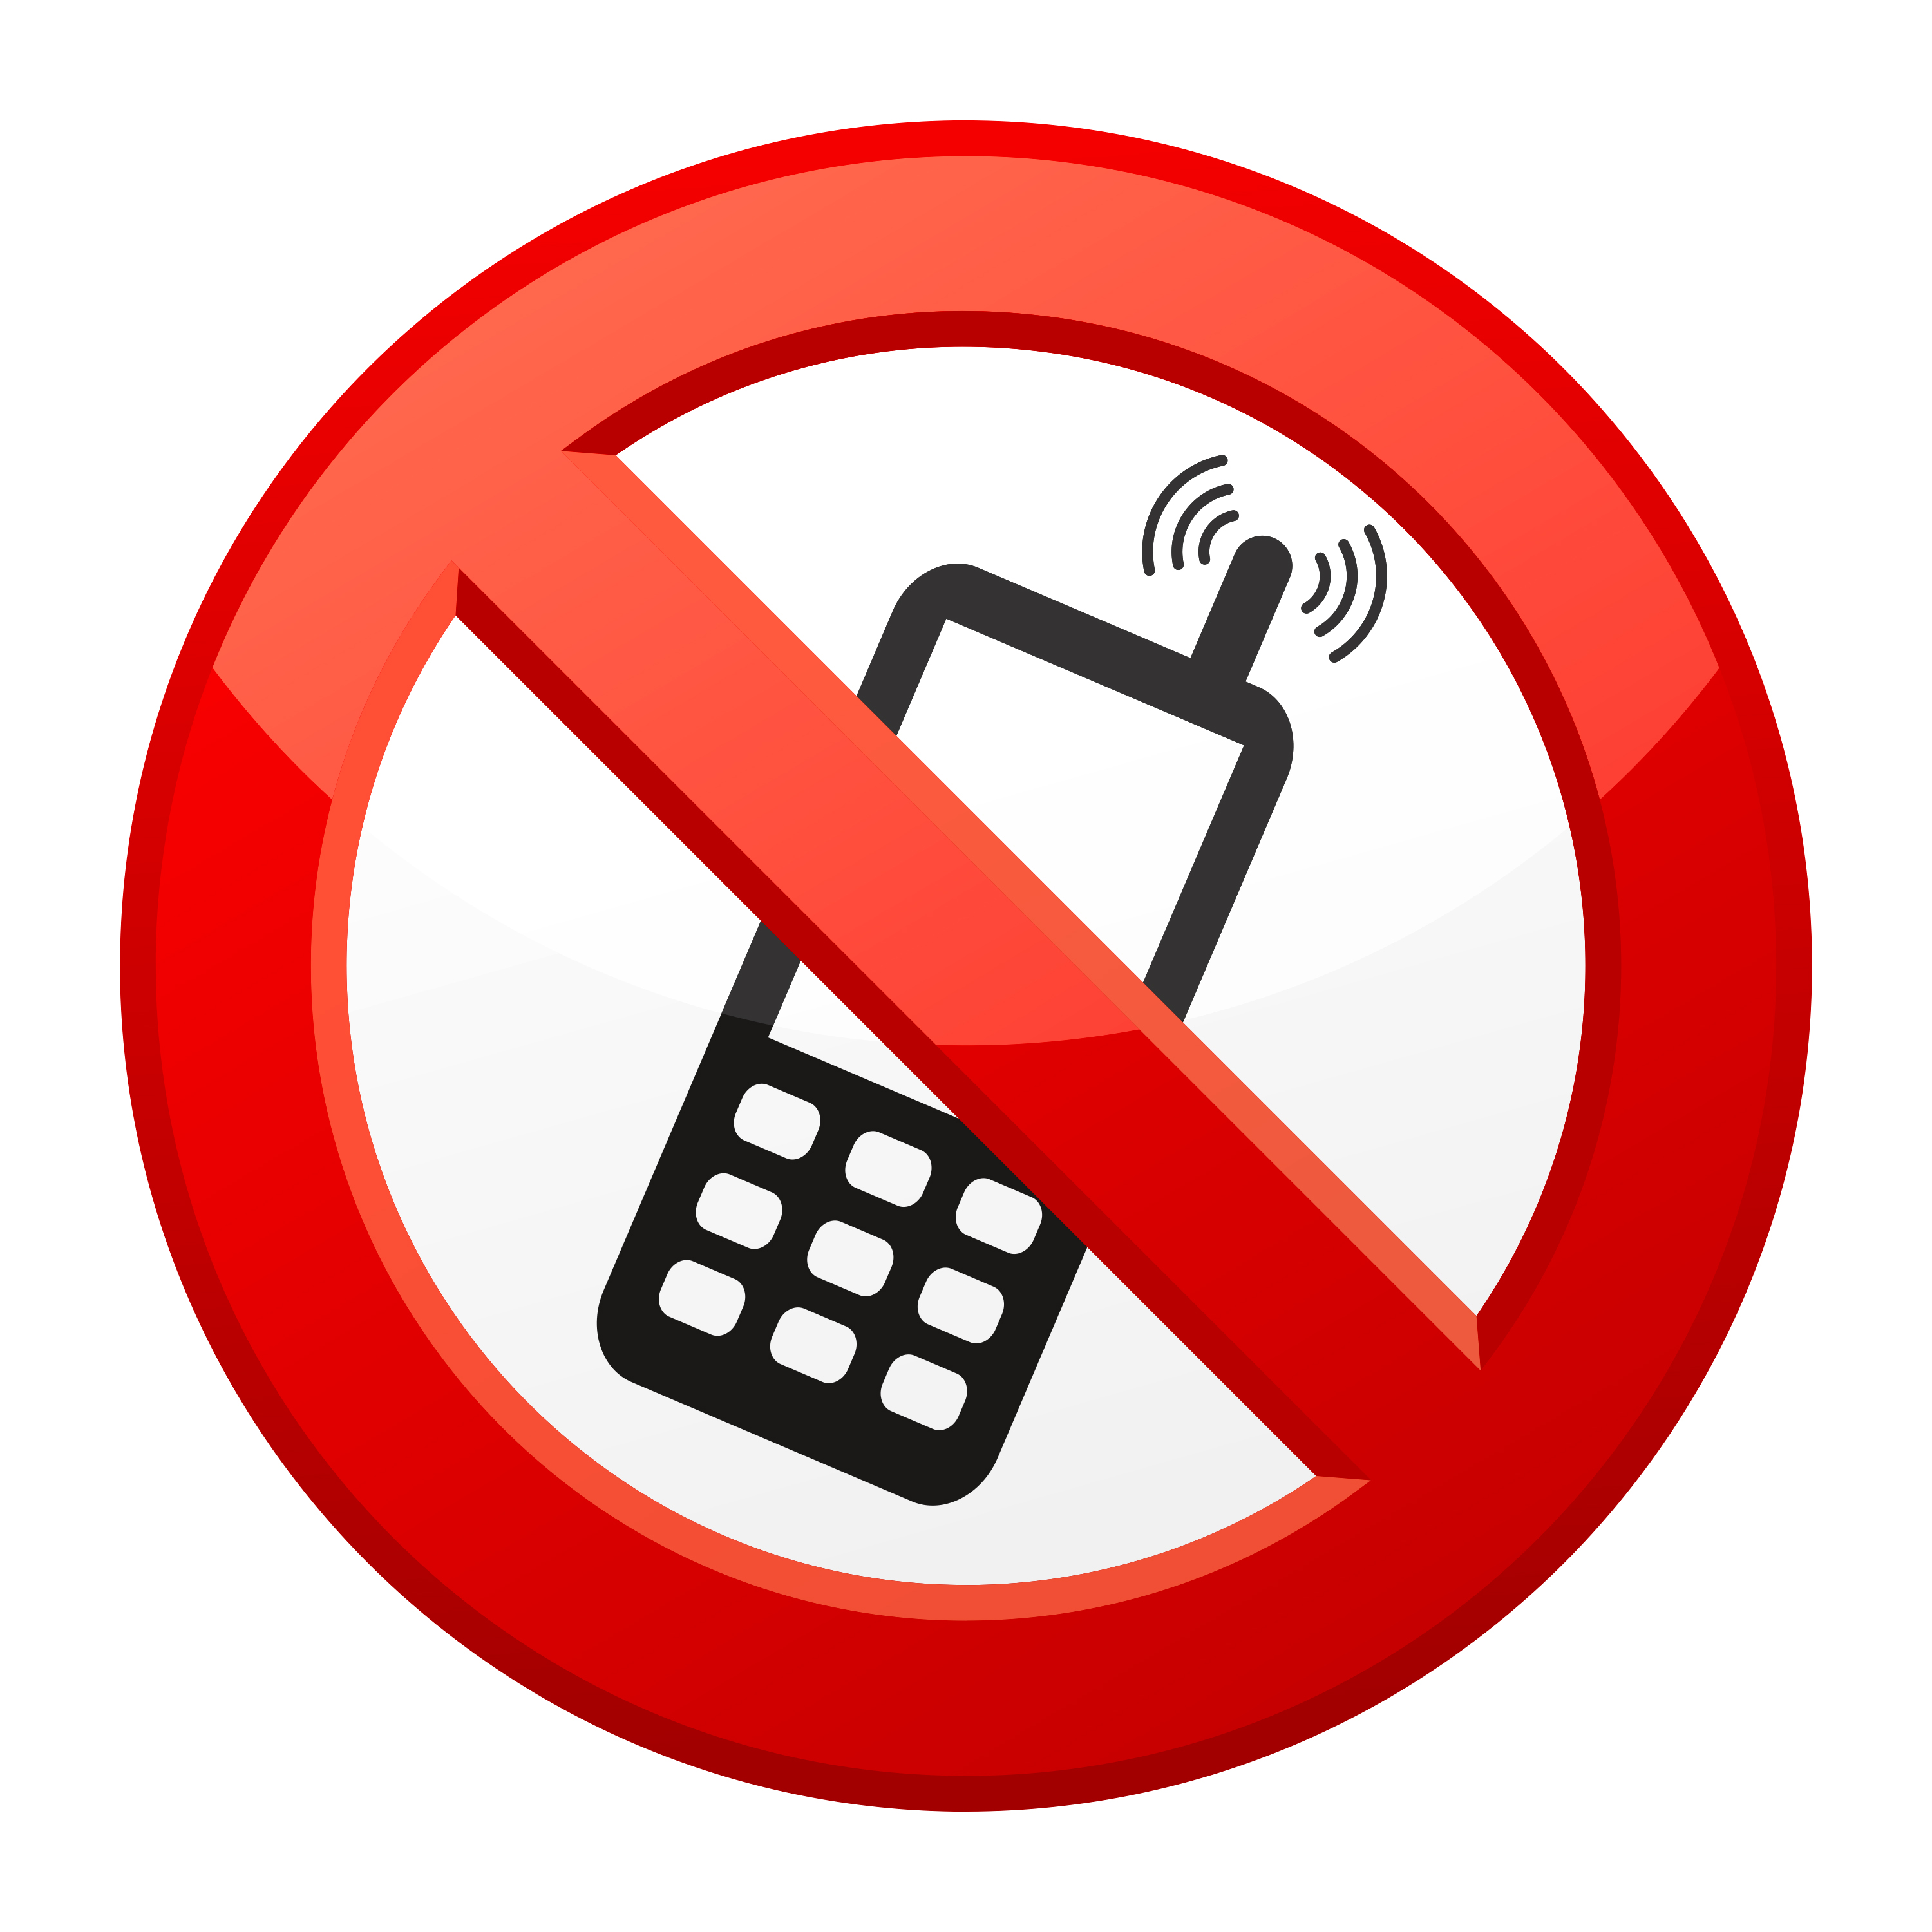 ... No Cell Phone u0026middot; Iowa Seek-... No Cell Phone u0026middot; Iowa Seeks App To Stop Texting And Driving Everything Driving Blog-5